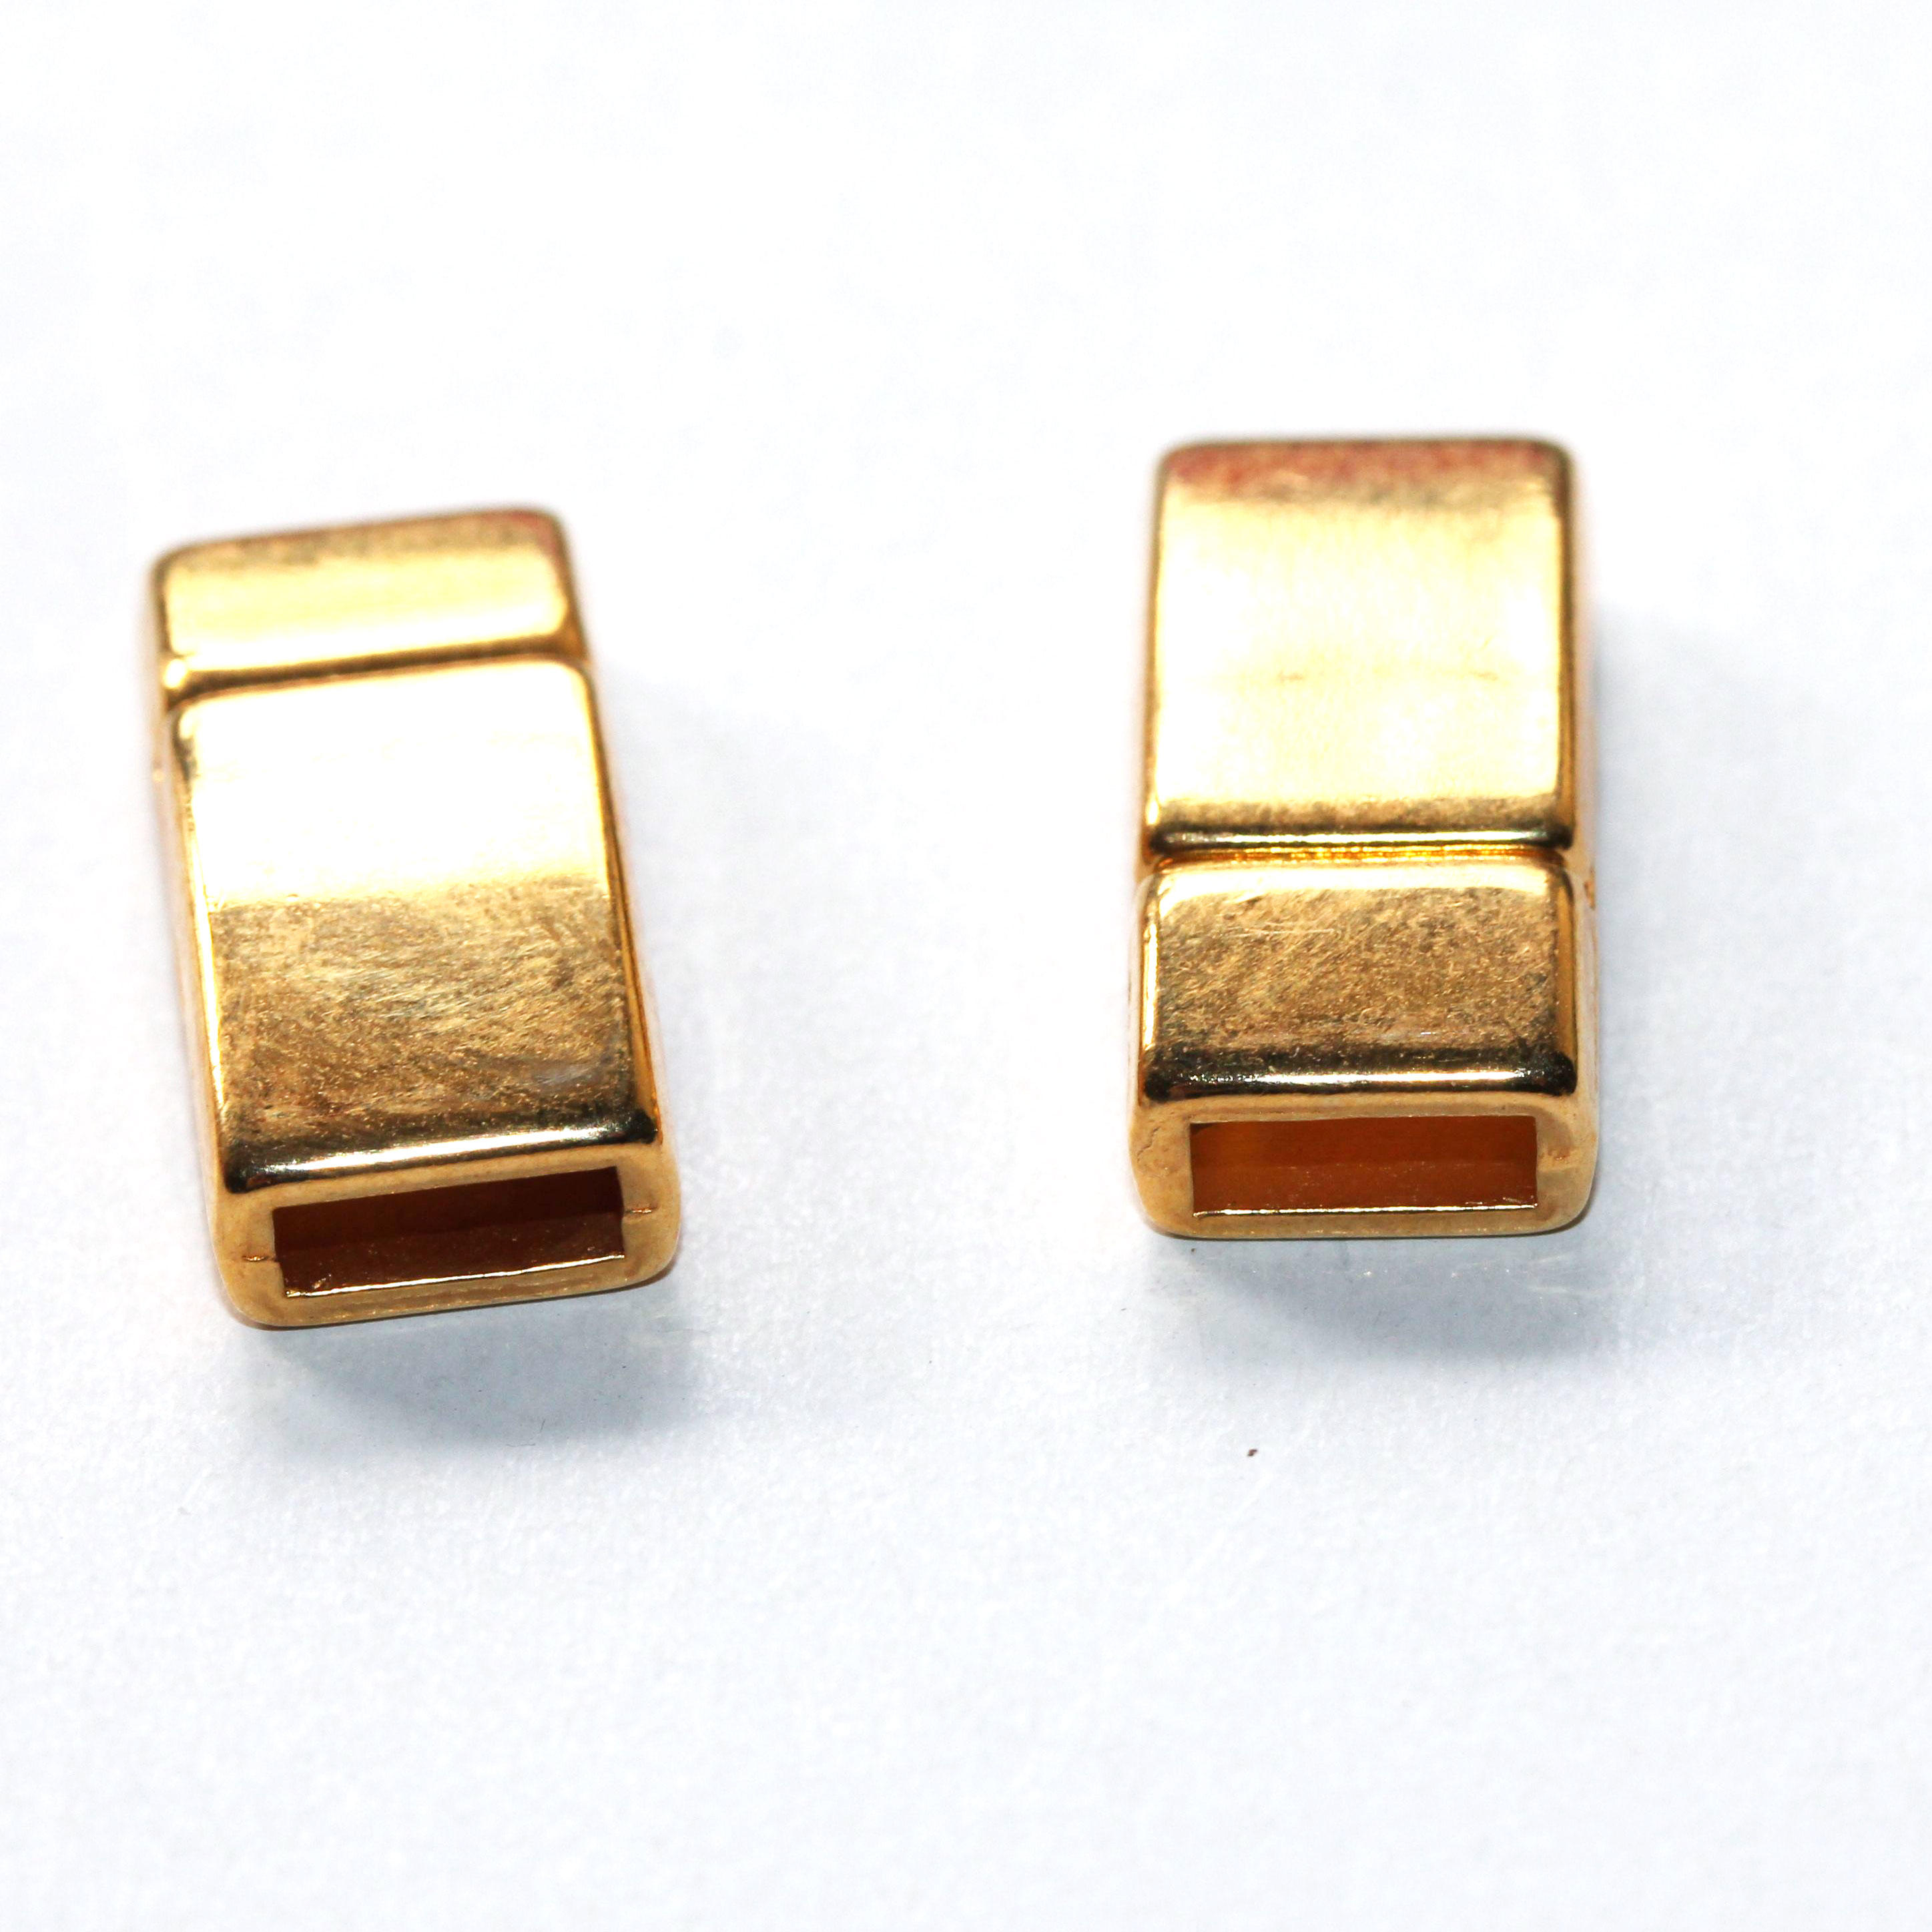 Gold Magnetic Clasp Fits 6/2mm leather and cords